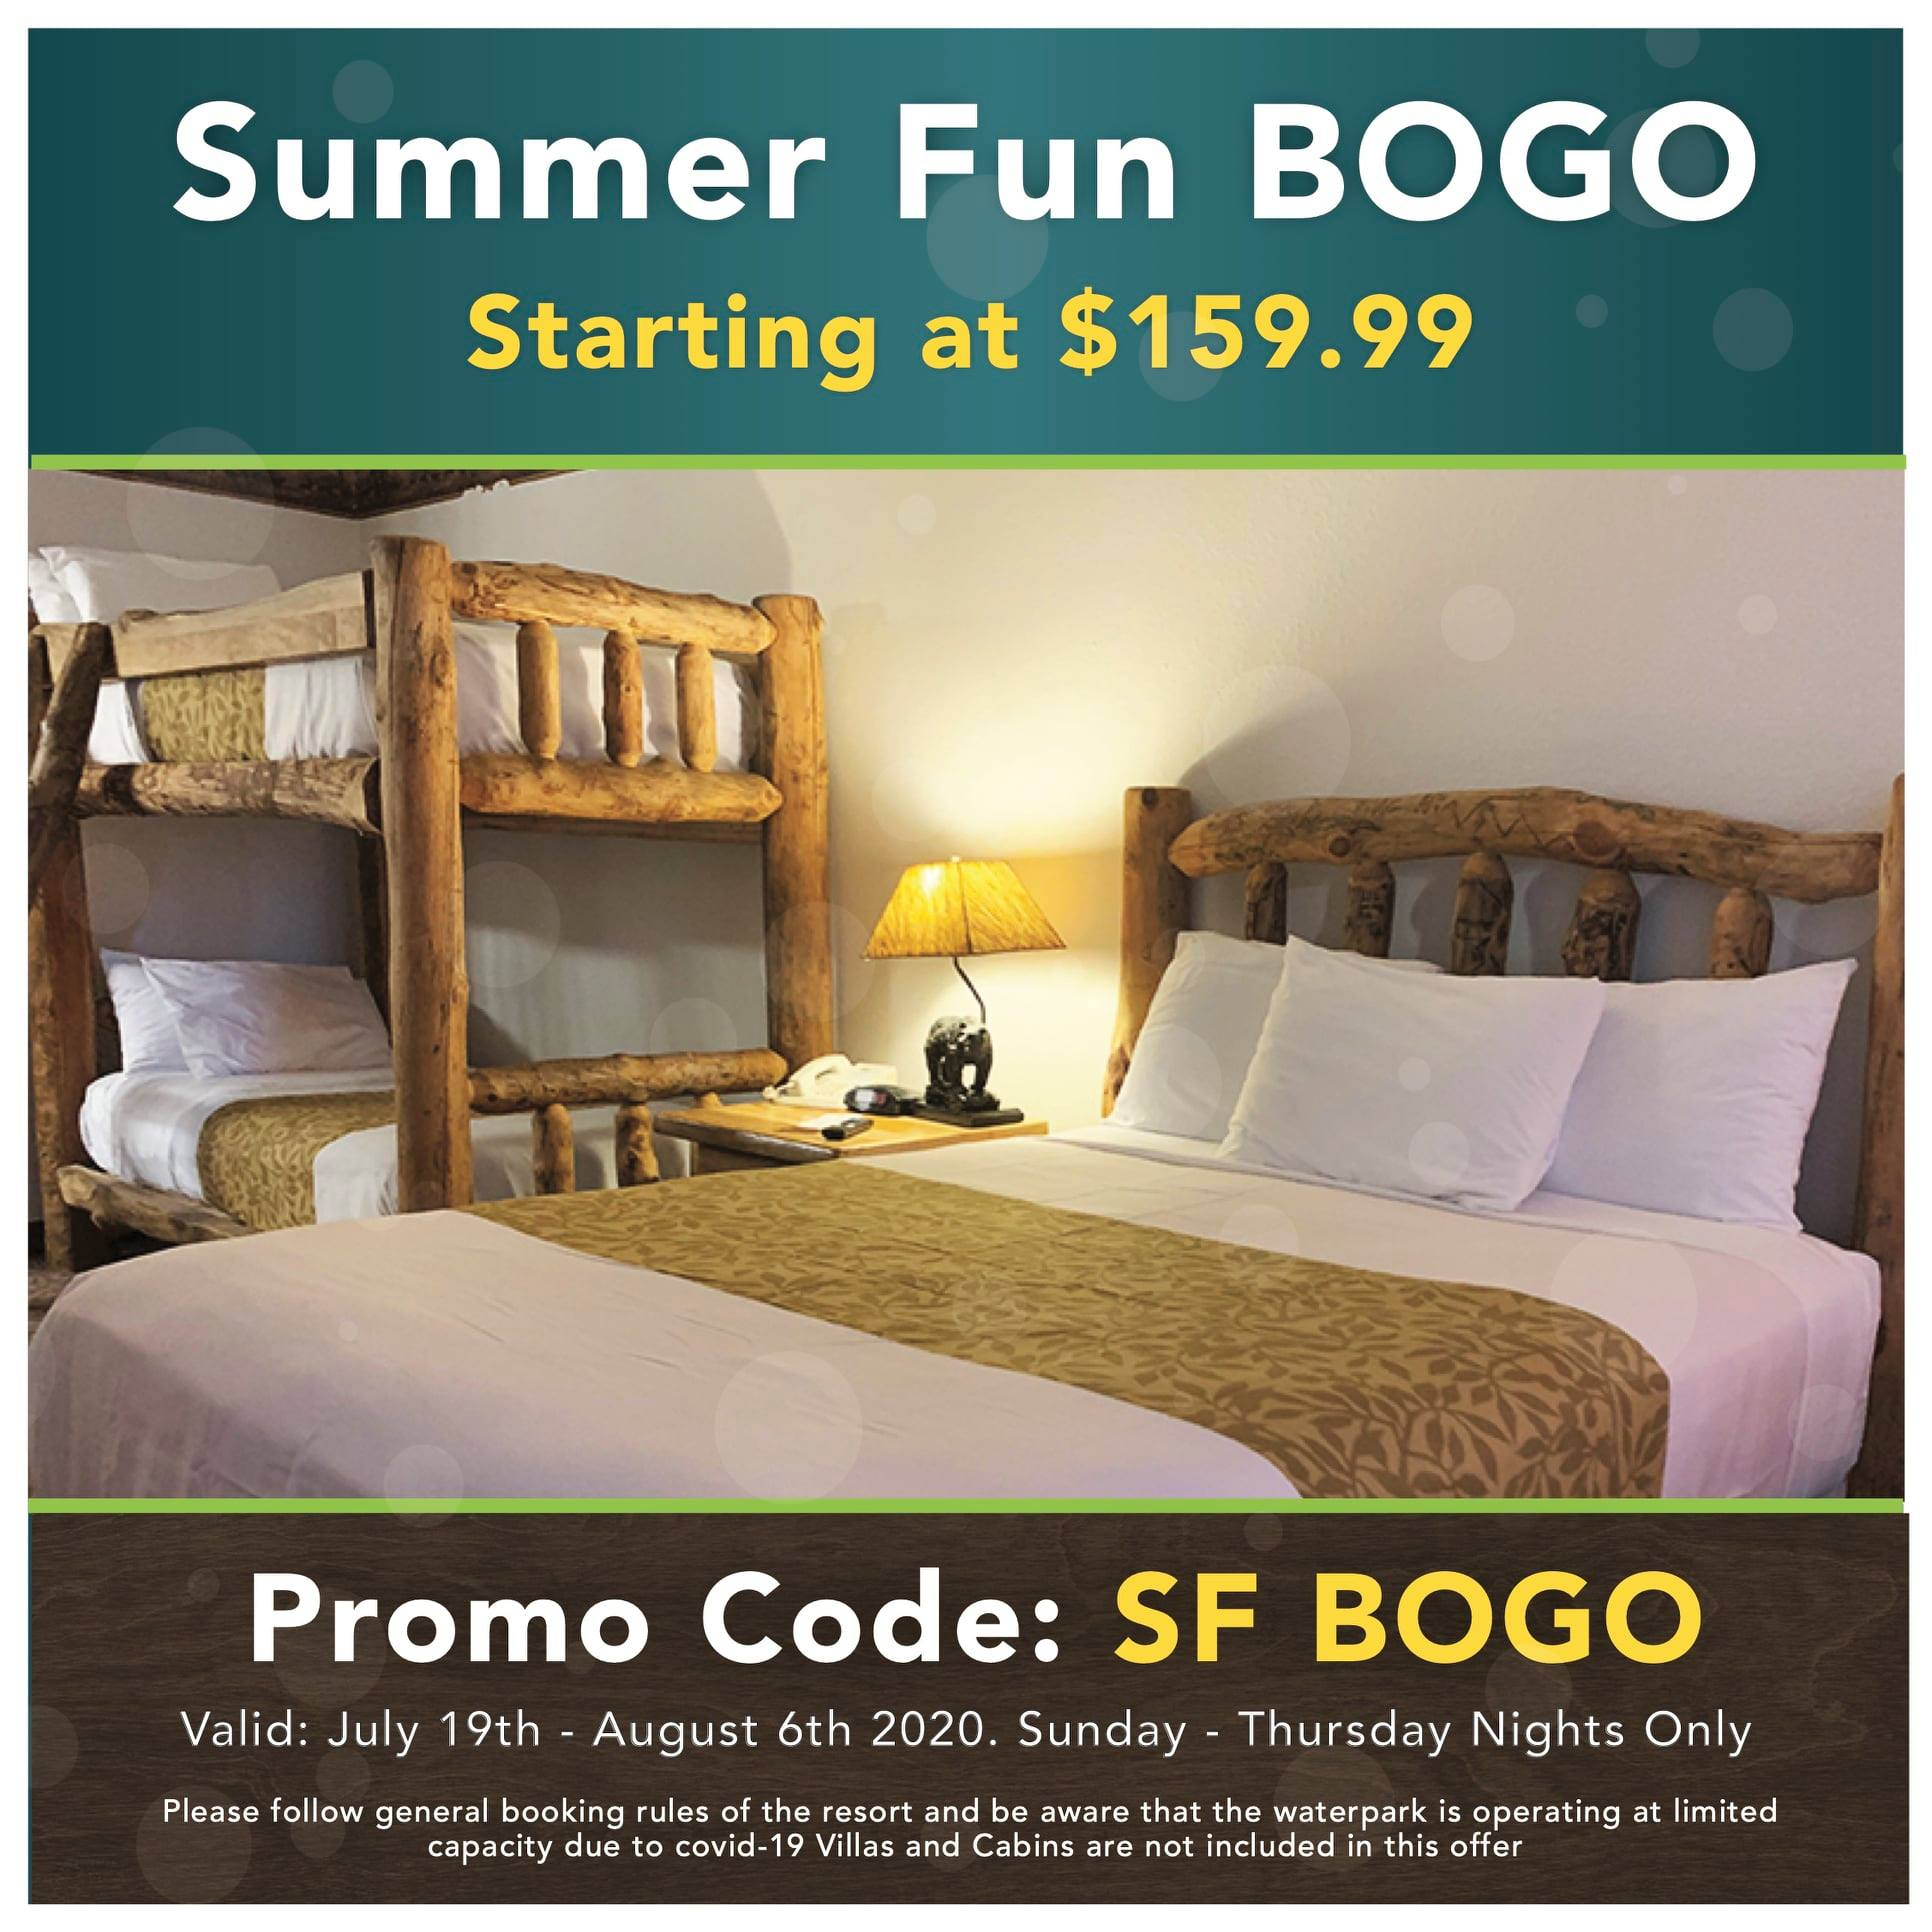 Summer Fun BOGO graphic